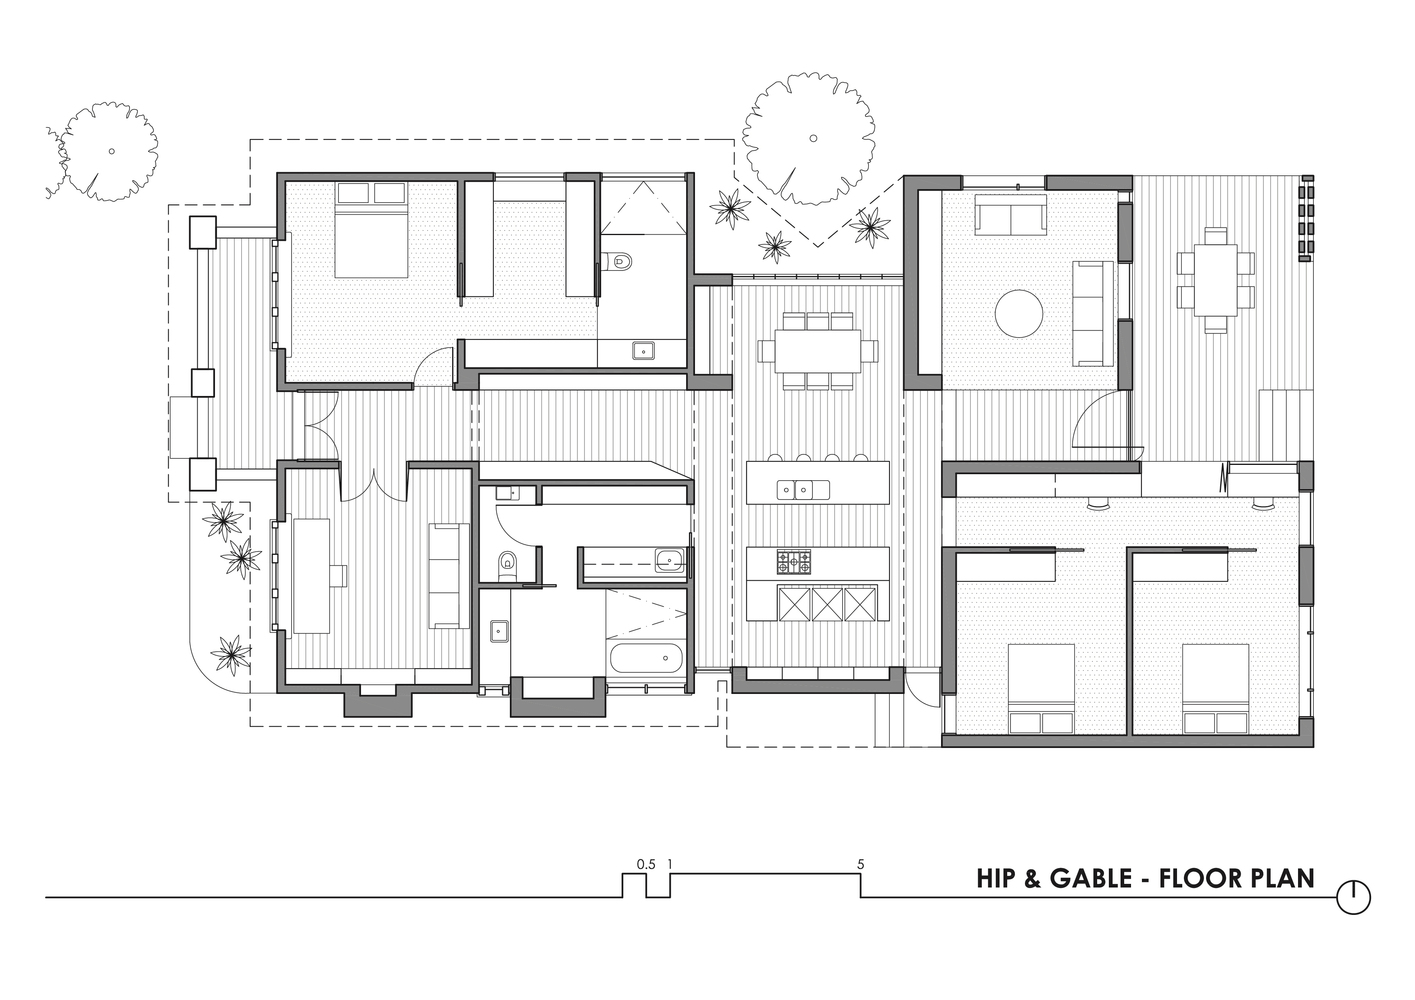 medium resolution of hip gable house architecture architecture